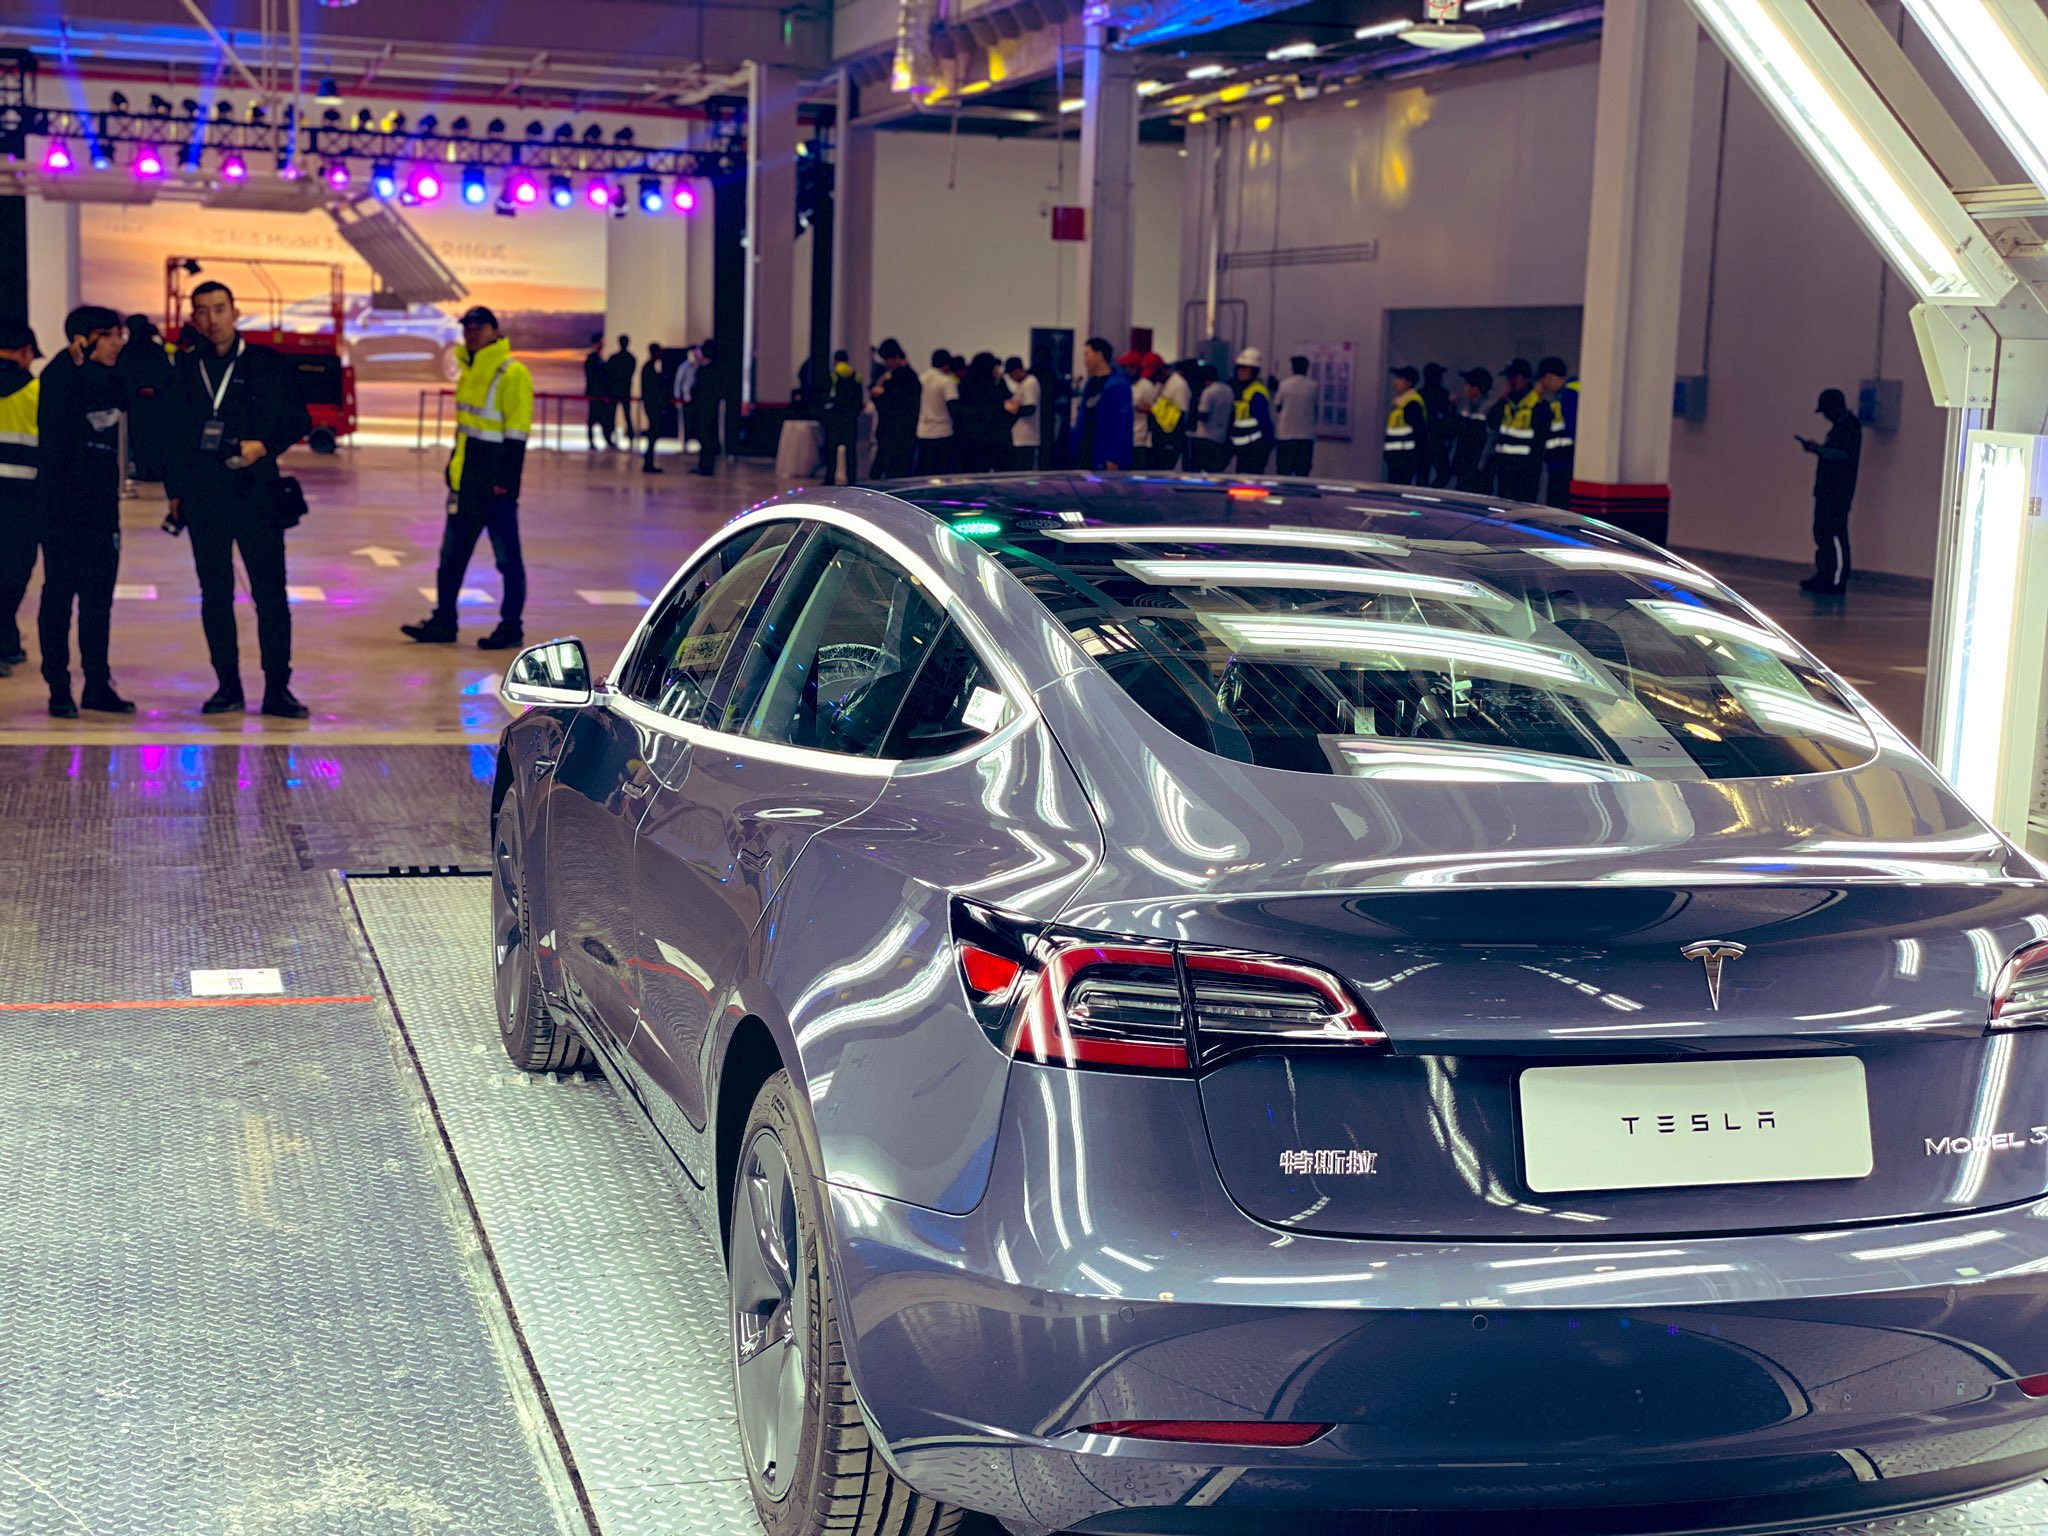 Tesla Model 3 China ceremony